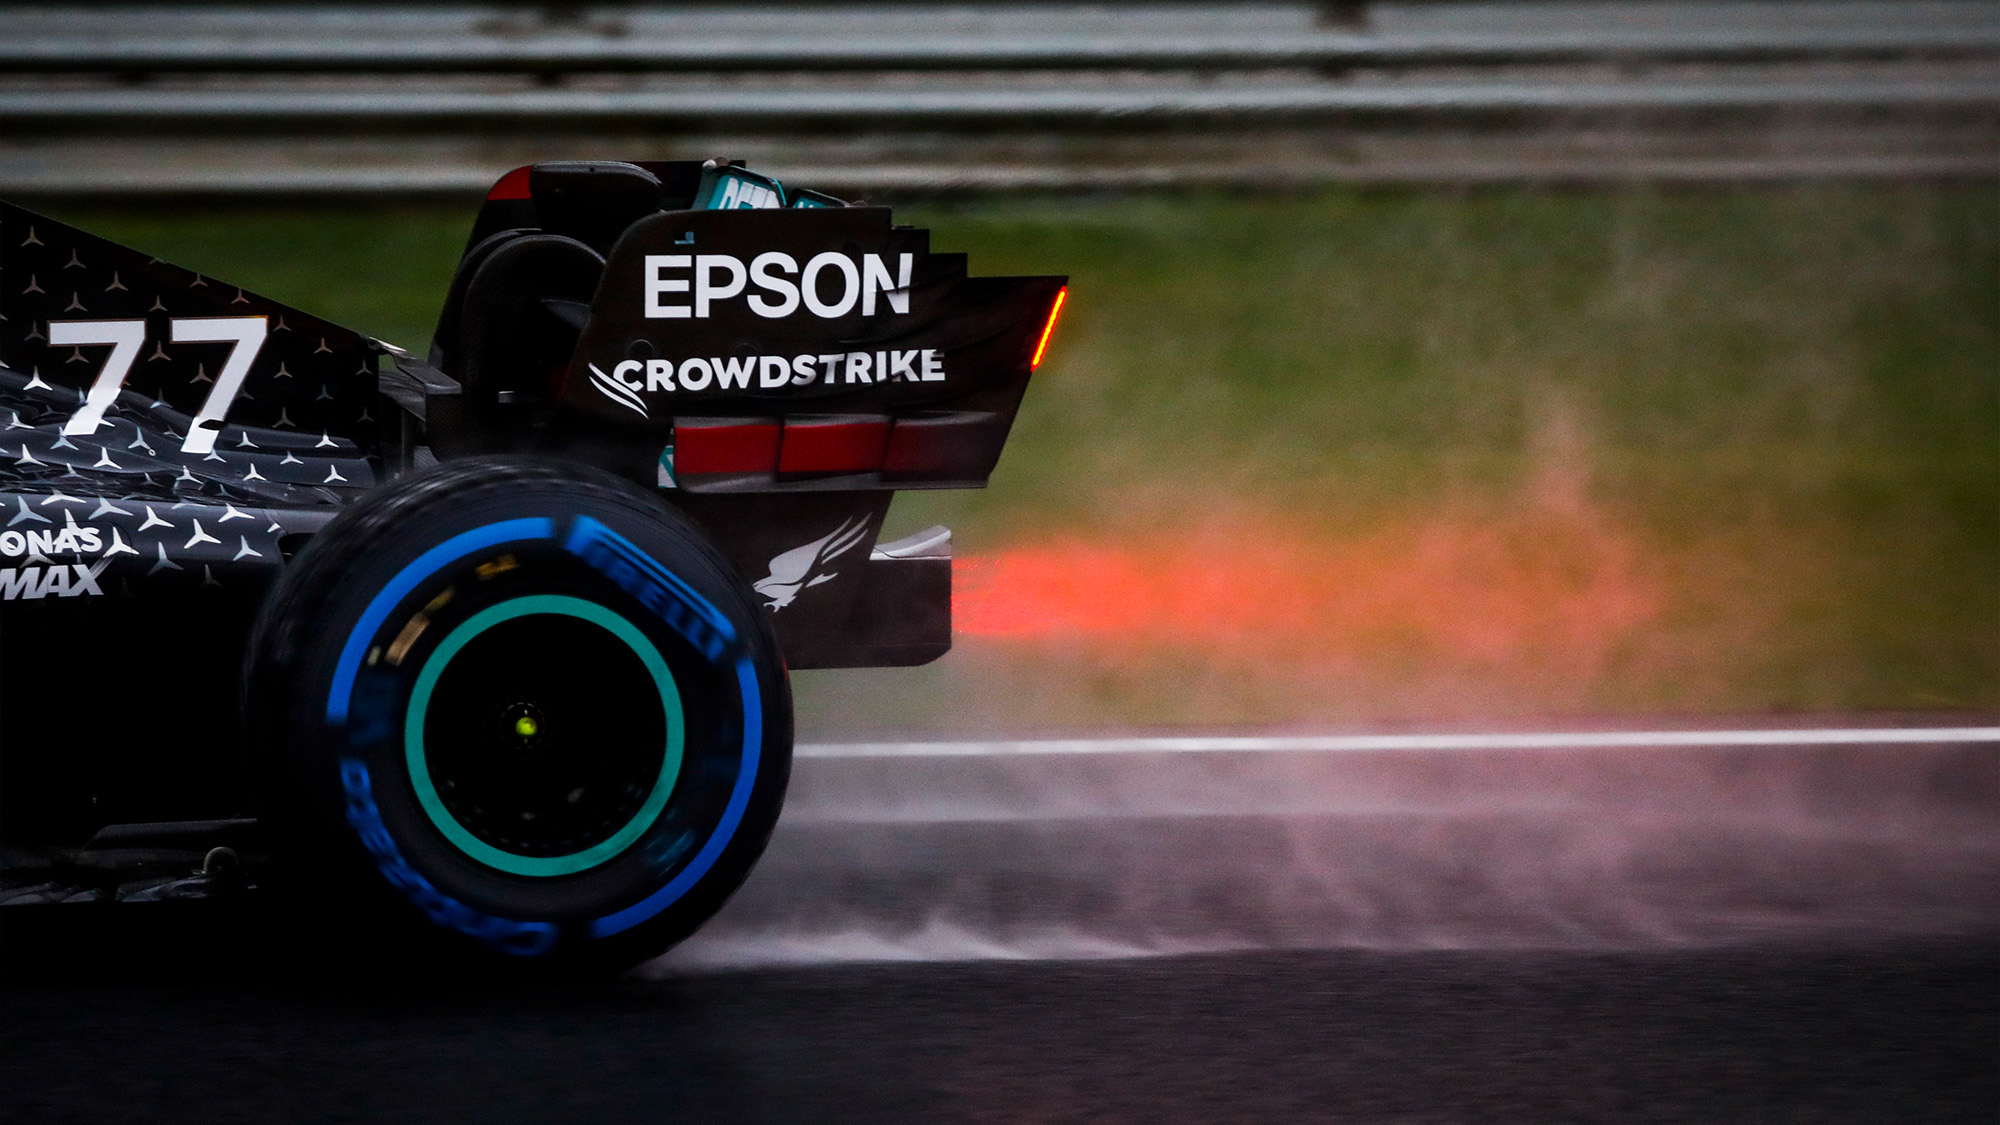 Spray behind Valtteri Bottas' Mercedes during qualifying for the 2020 F1 Turkish Grand Prix at Istanbul Park